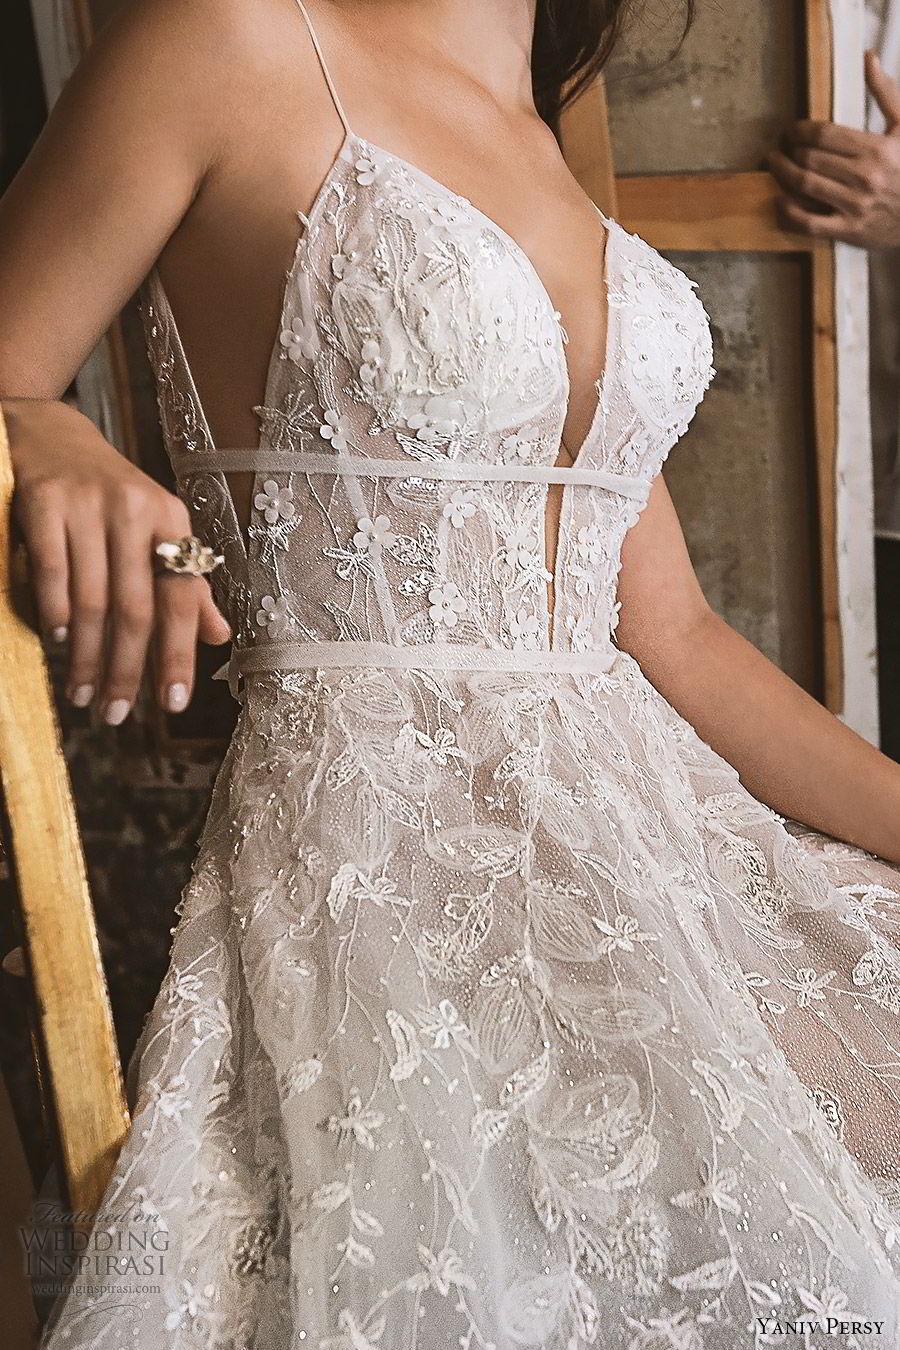 yaniv persy fall 2019 lavish bridal sleeveless thin straps plunging sweetheart neckline embellished a line ball gown wedding dress open back sexy glitzy romantic (5) zv